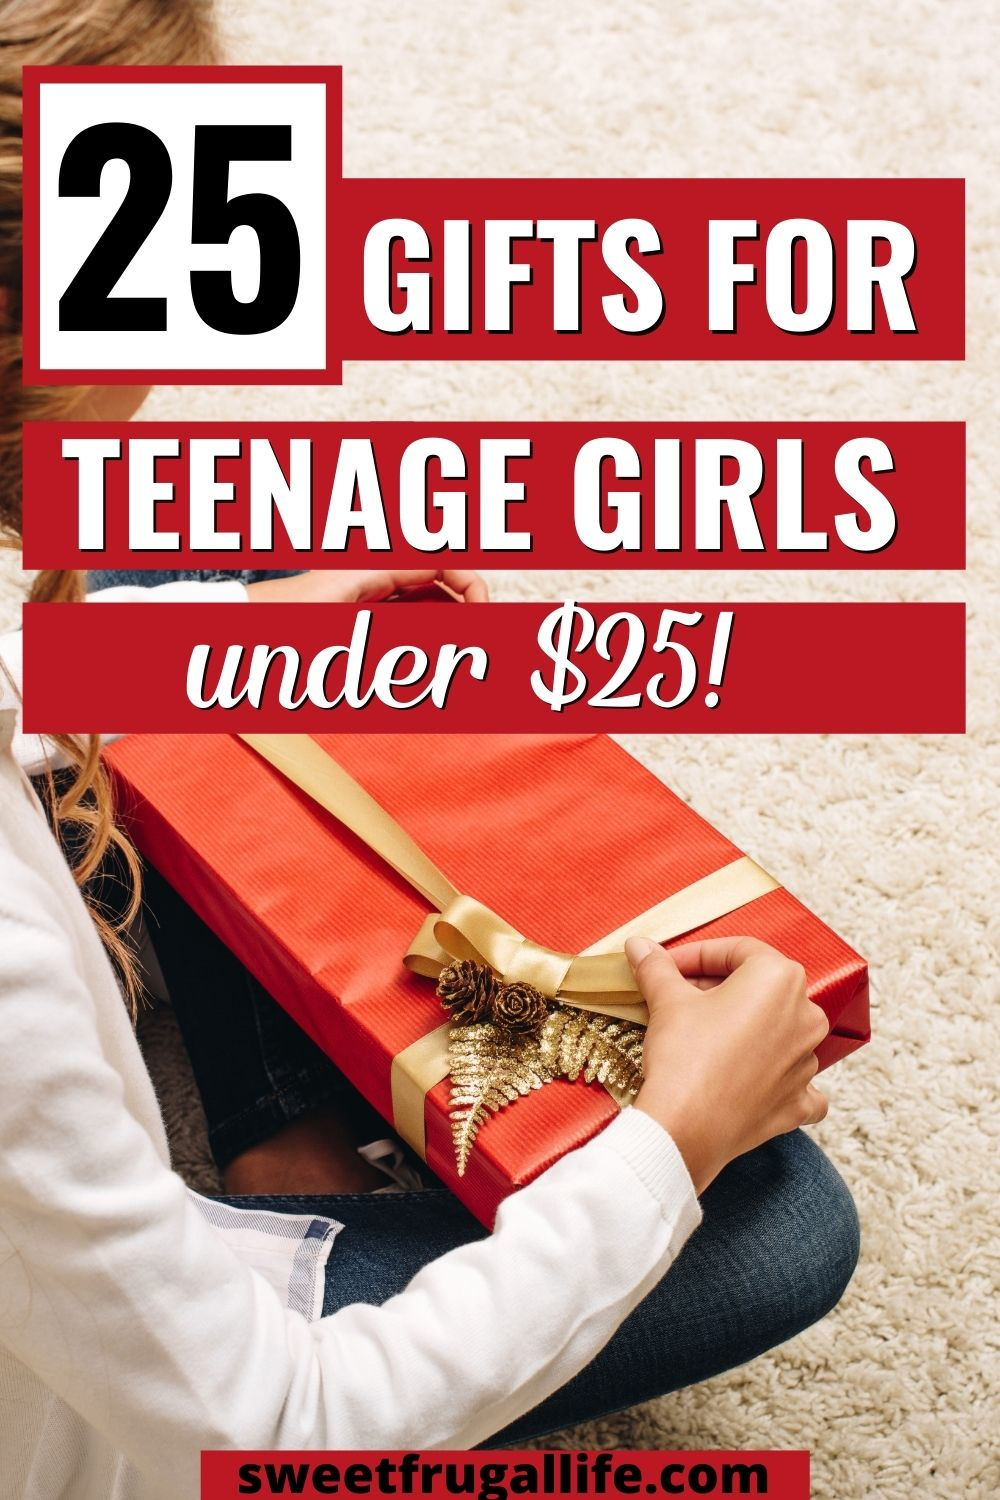 gift ideas for teen girls under $25 - cheap gifts for teens.